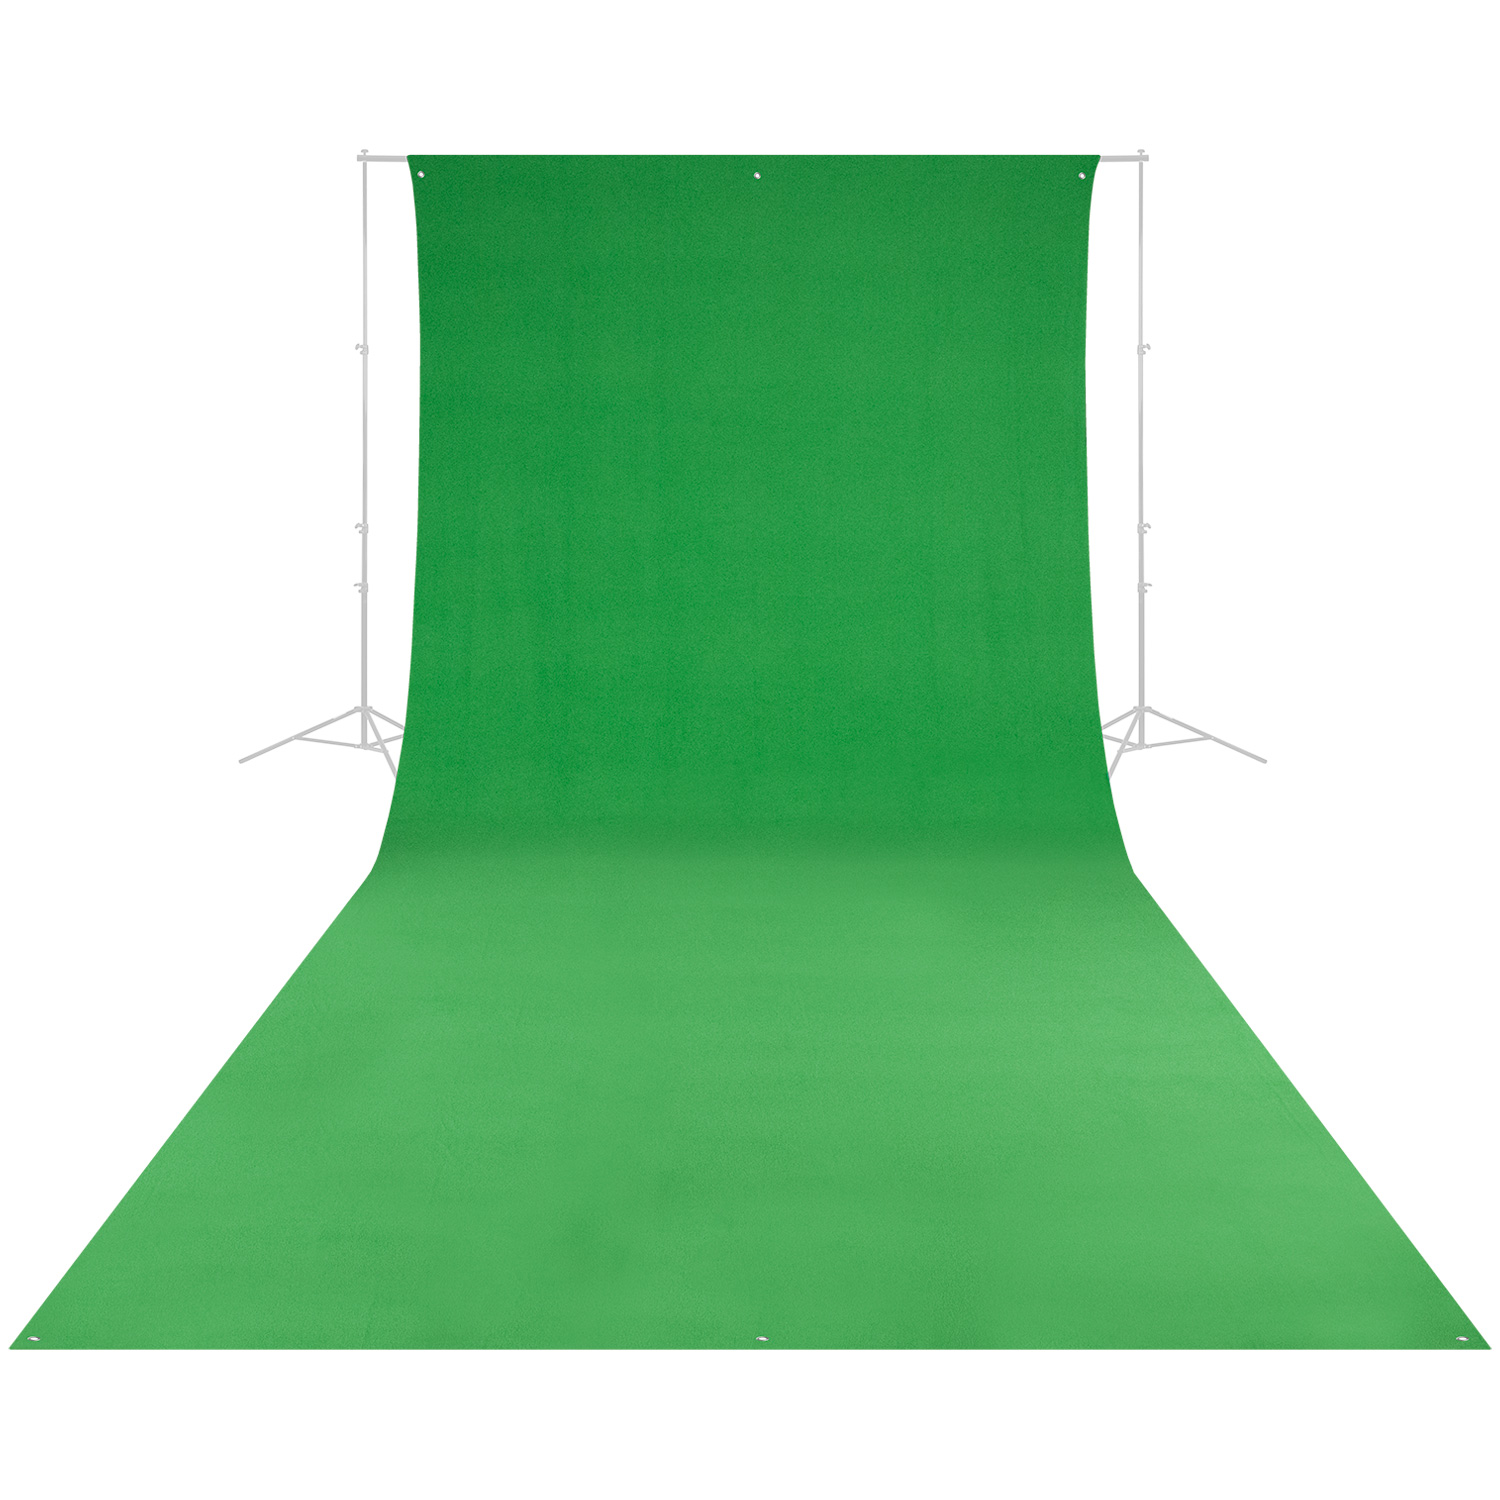 9' x 20' Wrinkle-Resistant Chroma-Key Backdrop (Green Screen)